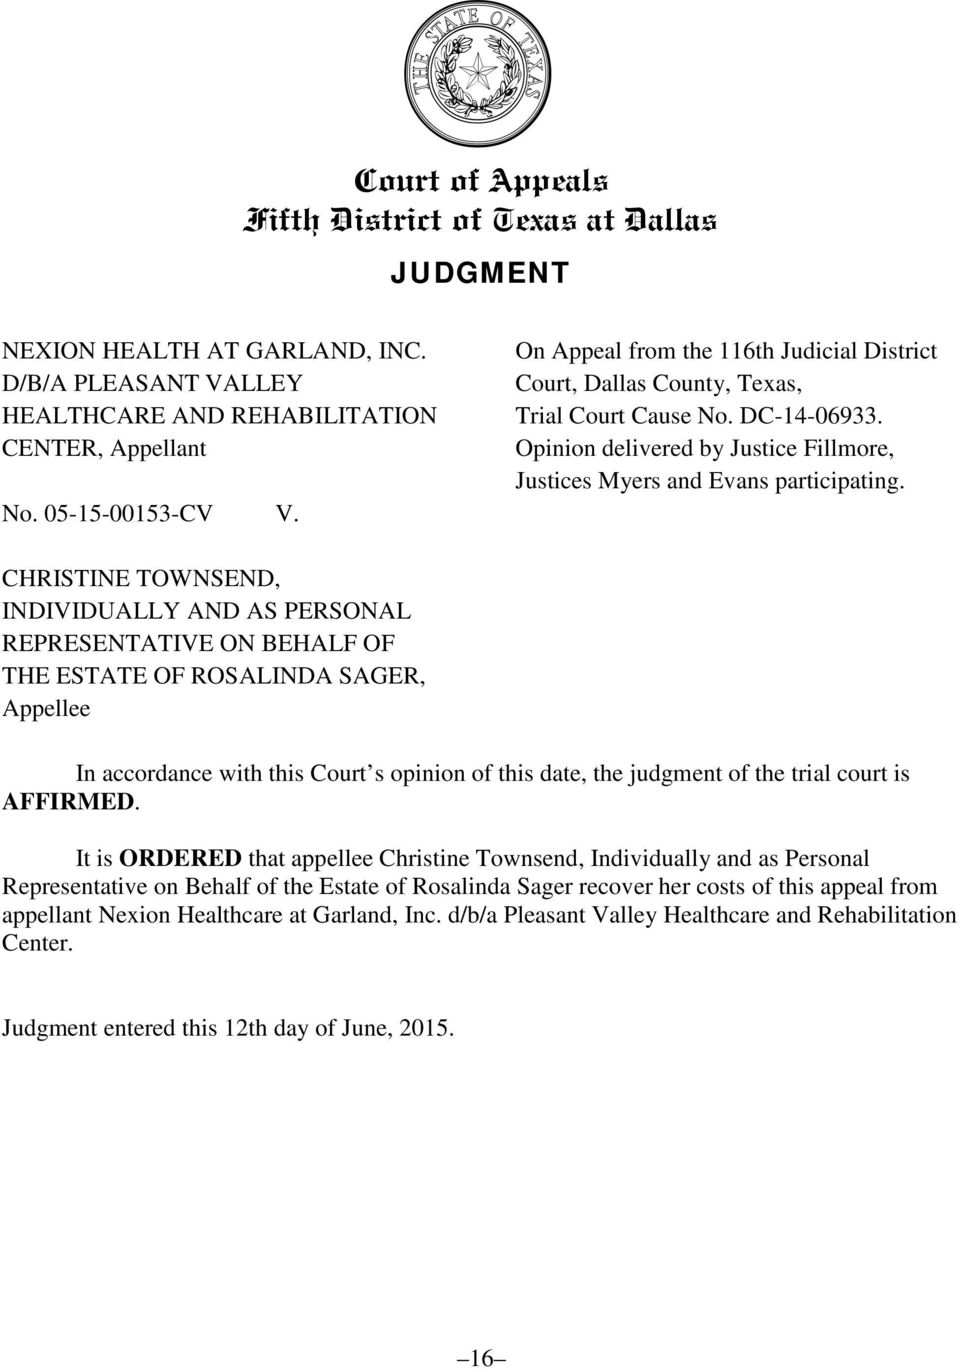 CHRISTINE TOWNSEND, INDIVIDUALLY AND AS PERSONAL REPRESENTATIVE ON BEHALF OF THE ESTATE OF ROSALINDA SAGER, Appellee In accordance with this Court s opinion of this date, the judgment of the trial